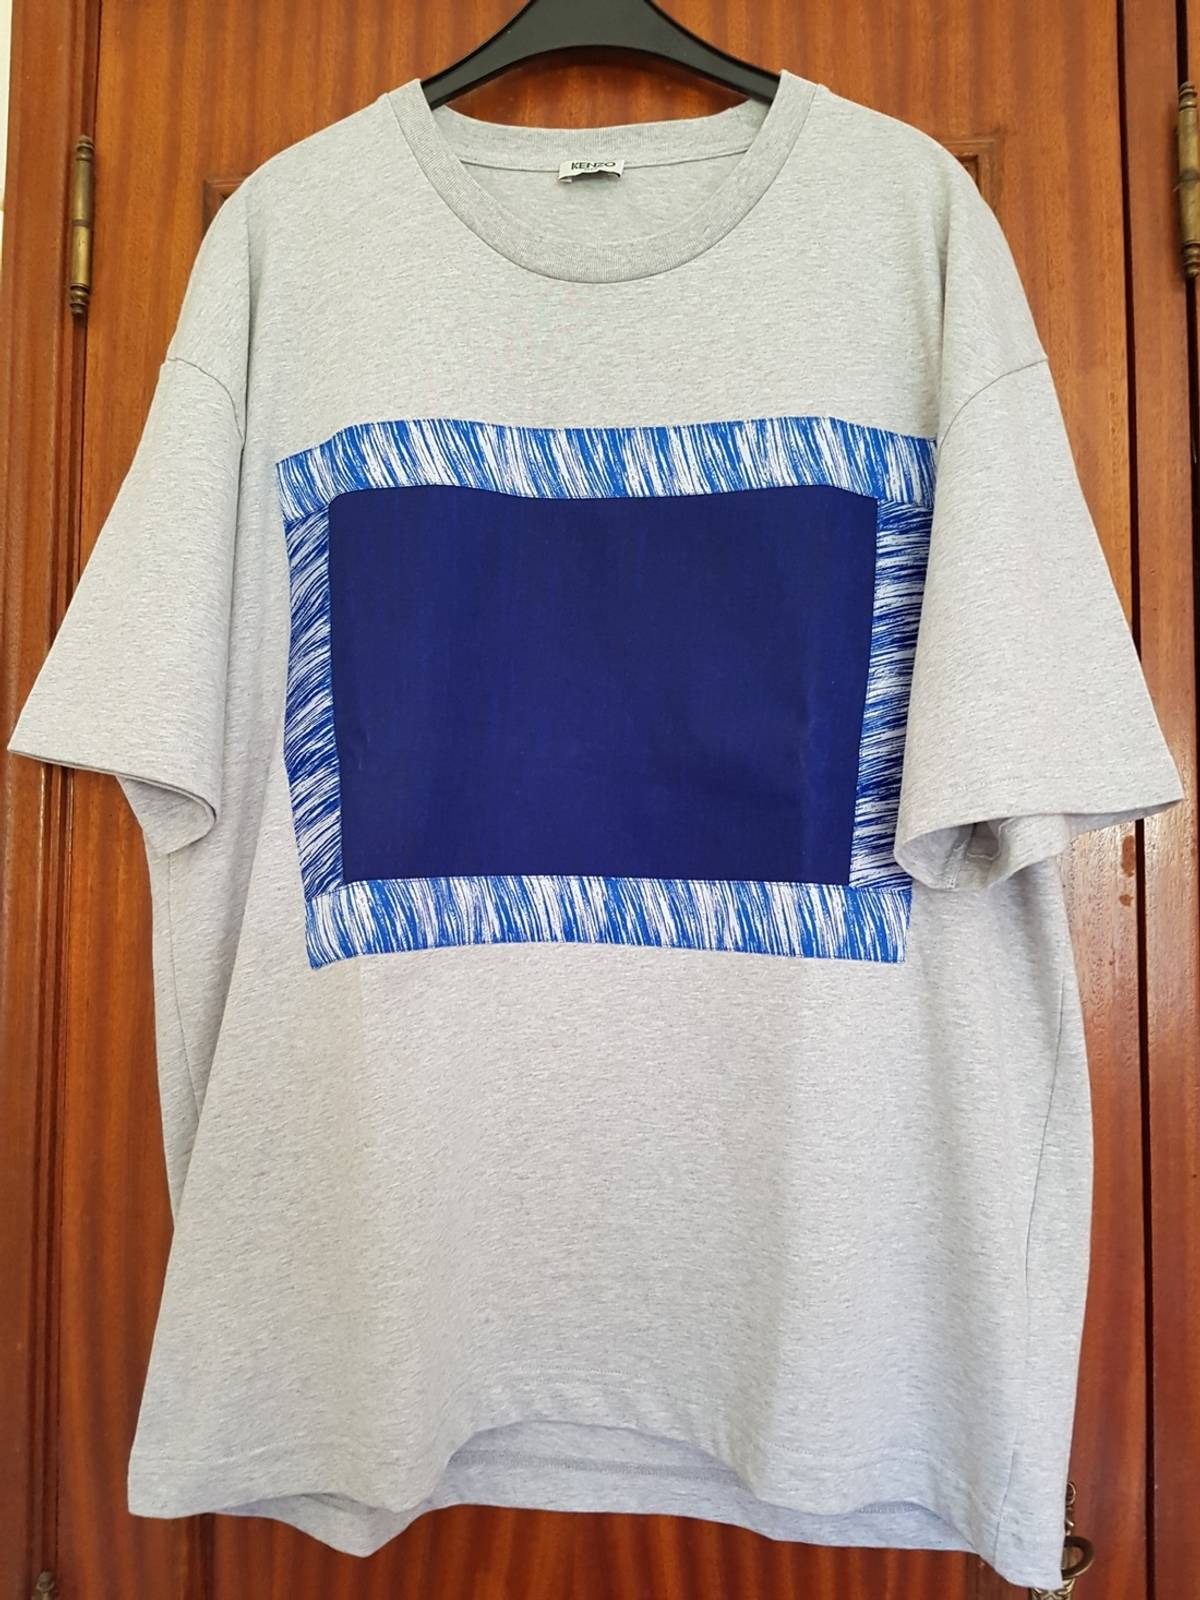 71572e87407f Kenzo Kenzo Wave Embroidered Blue/grey T-shirt | Grailed